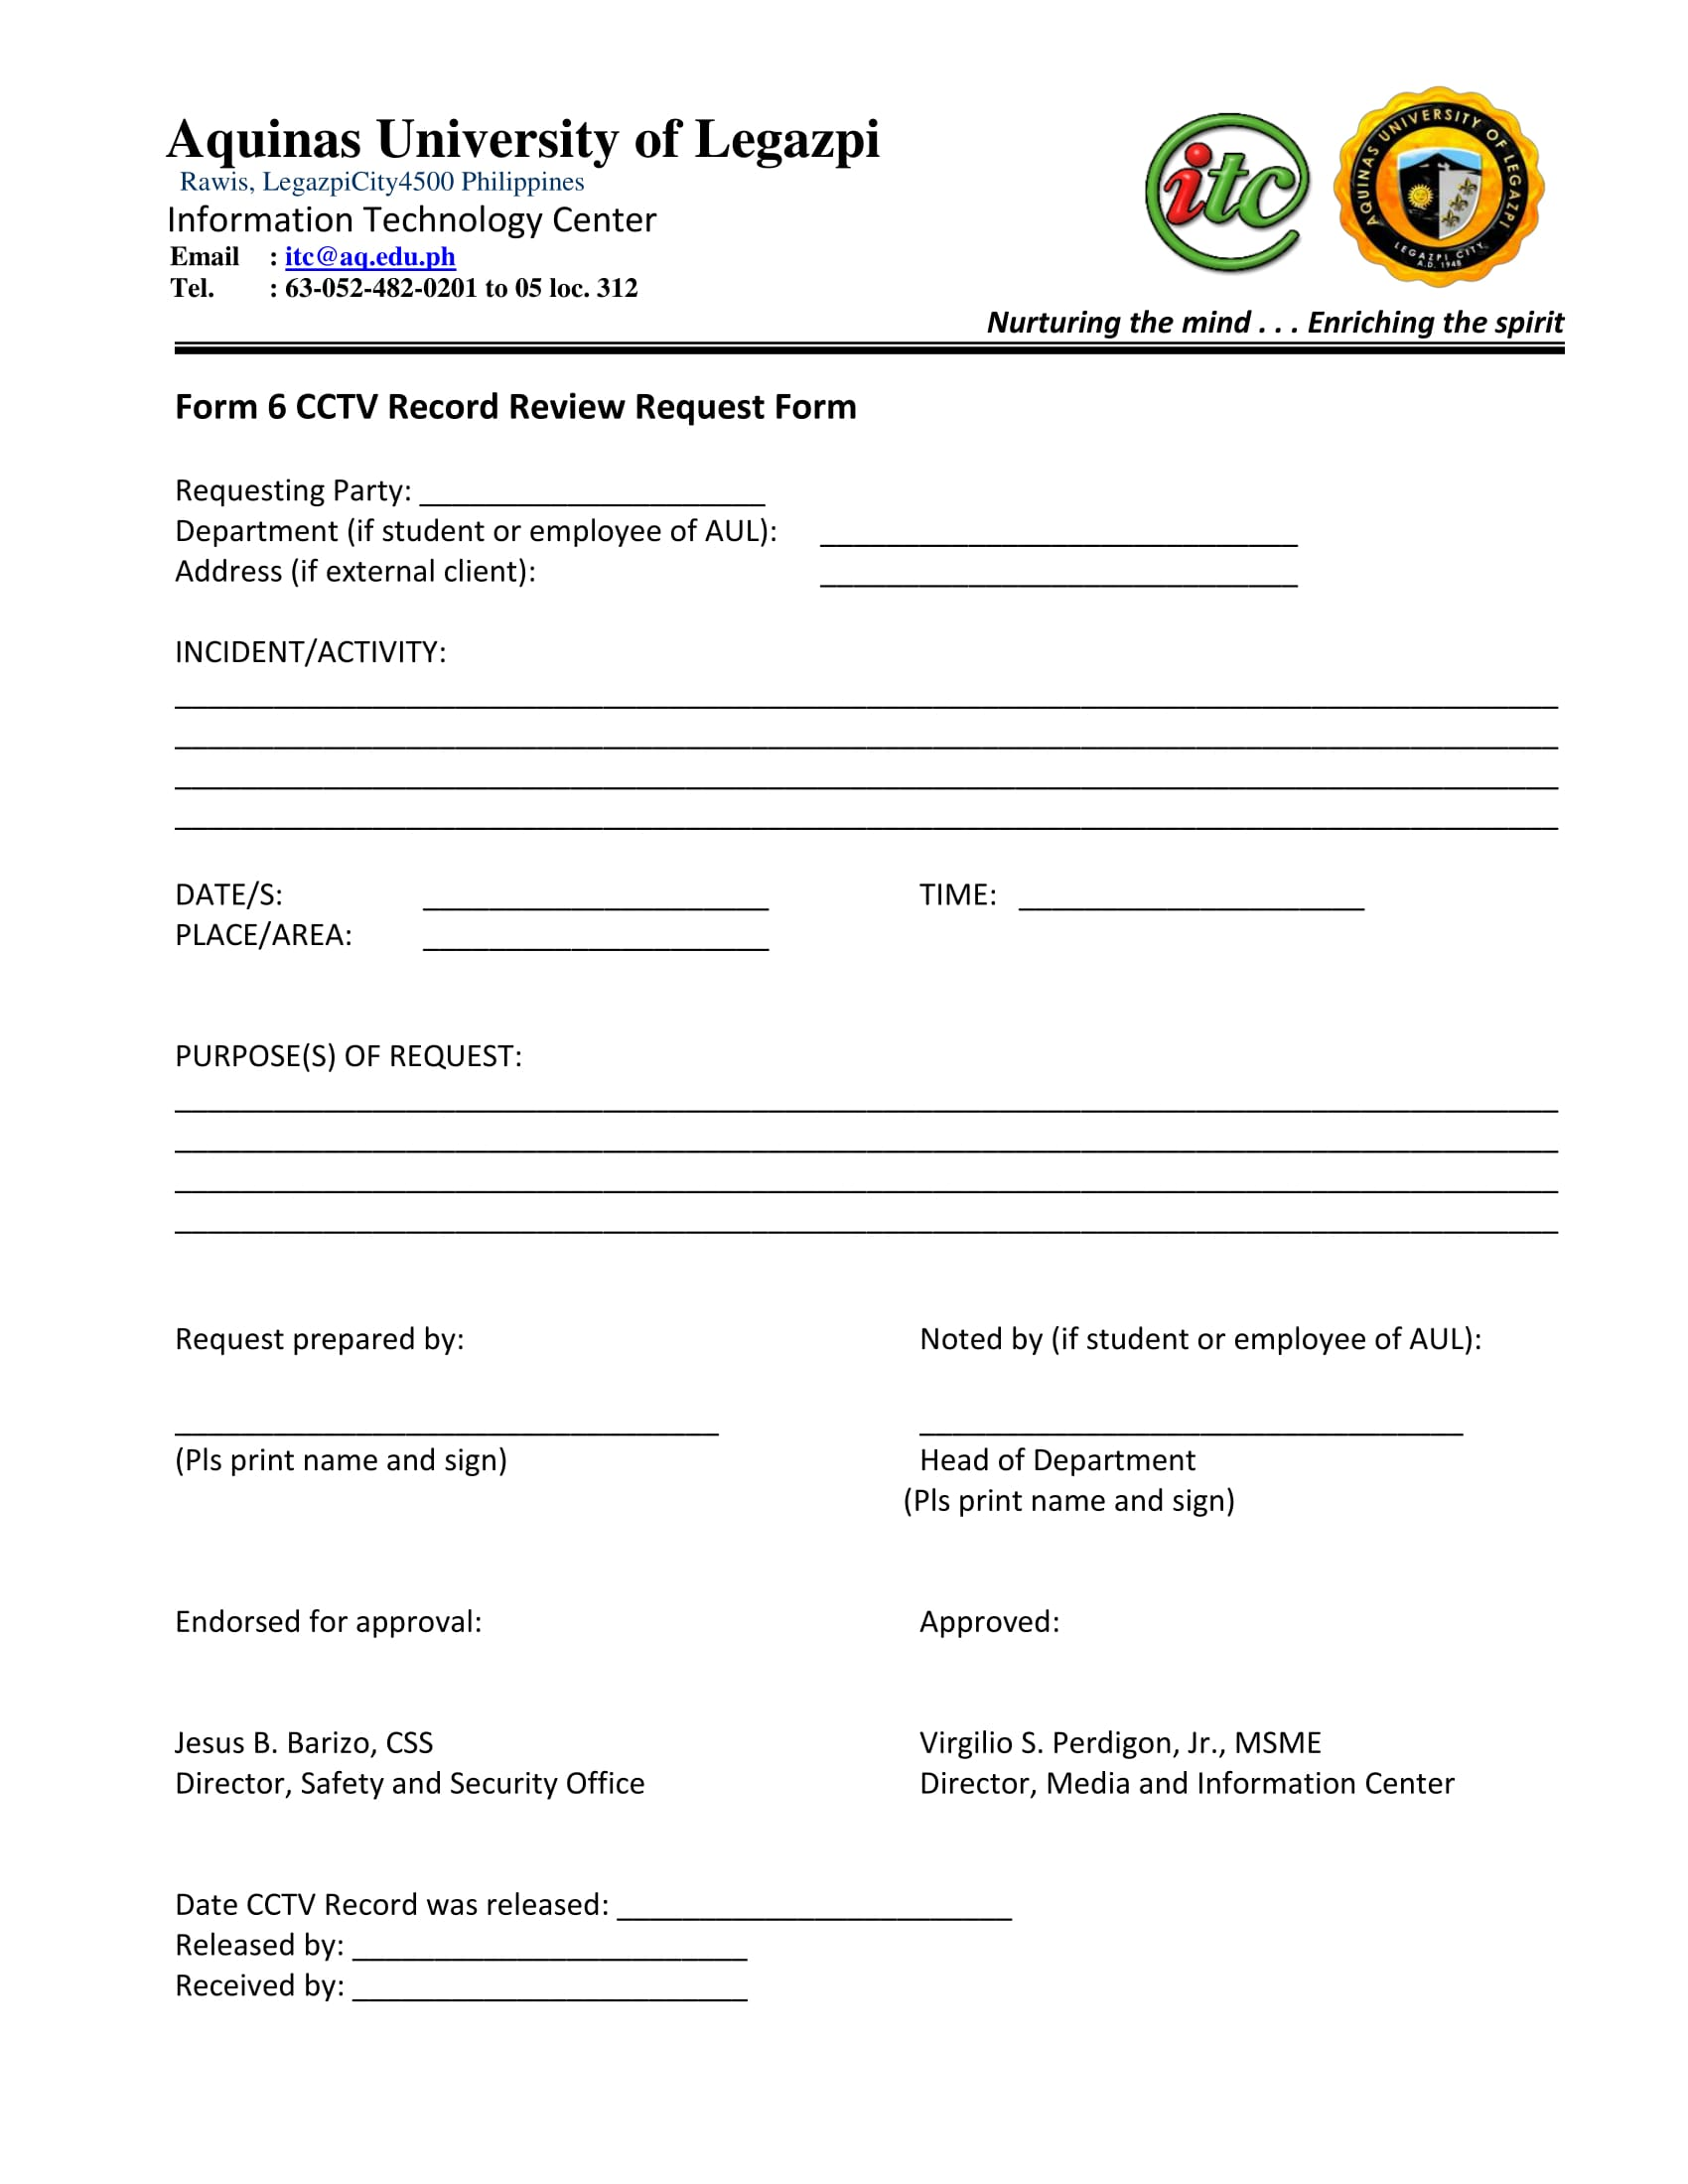 cctv record review request form 1